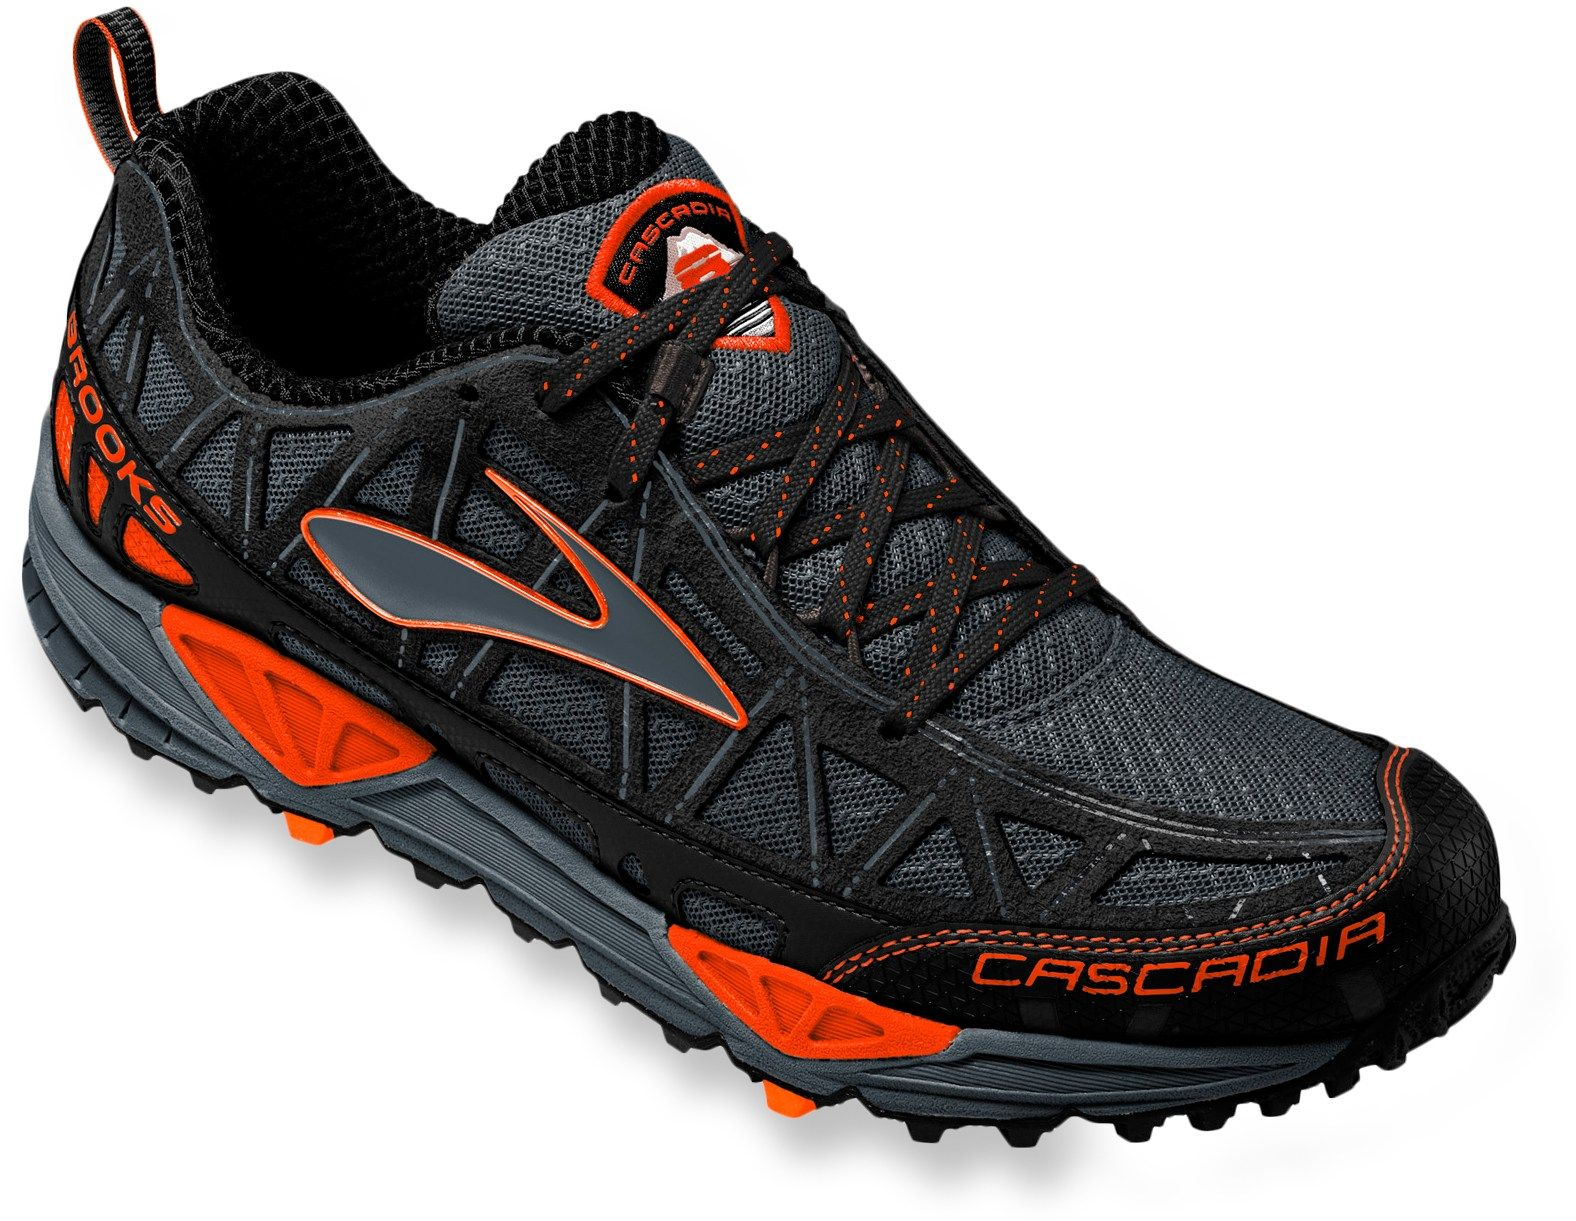 c4e6988d813 The traction and responsive supportive to tackle ultras or quick outings  through local trails—Men s Brooks Cascadia 8 Trail-Running Shoes.